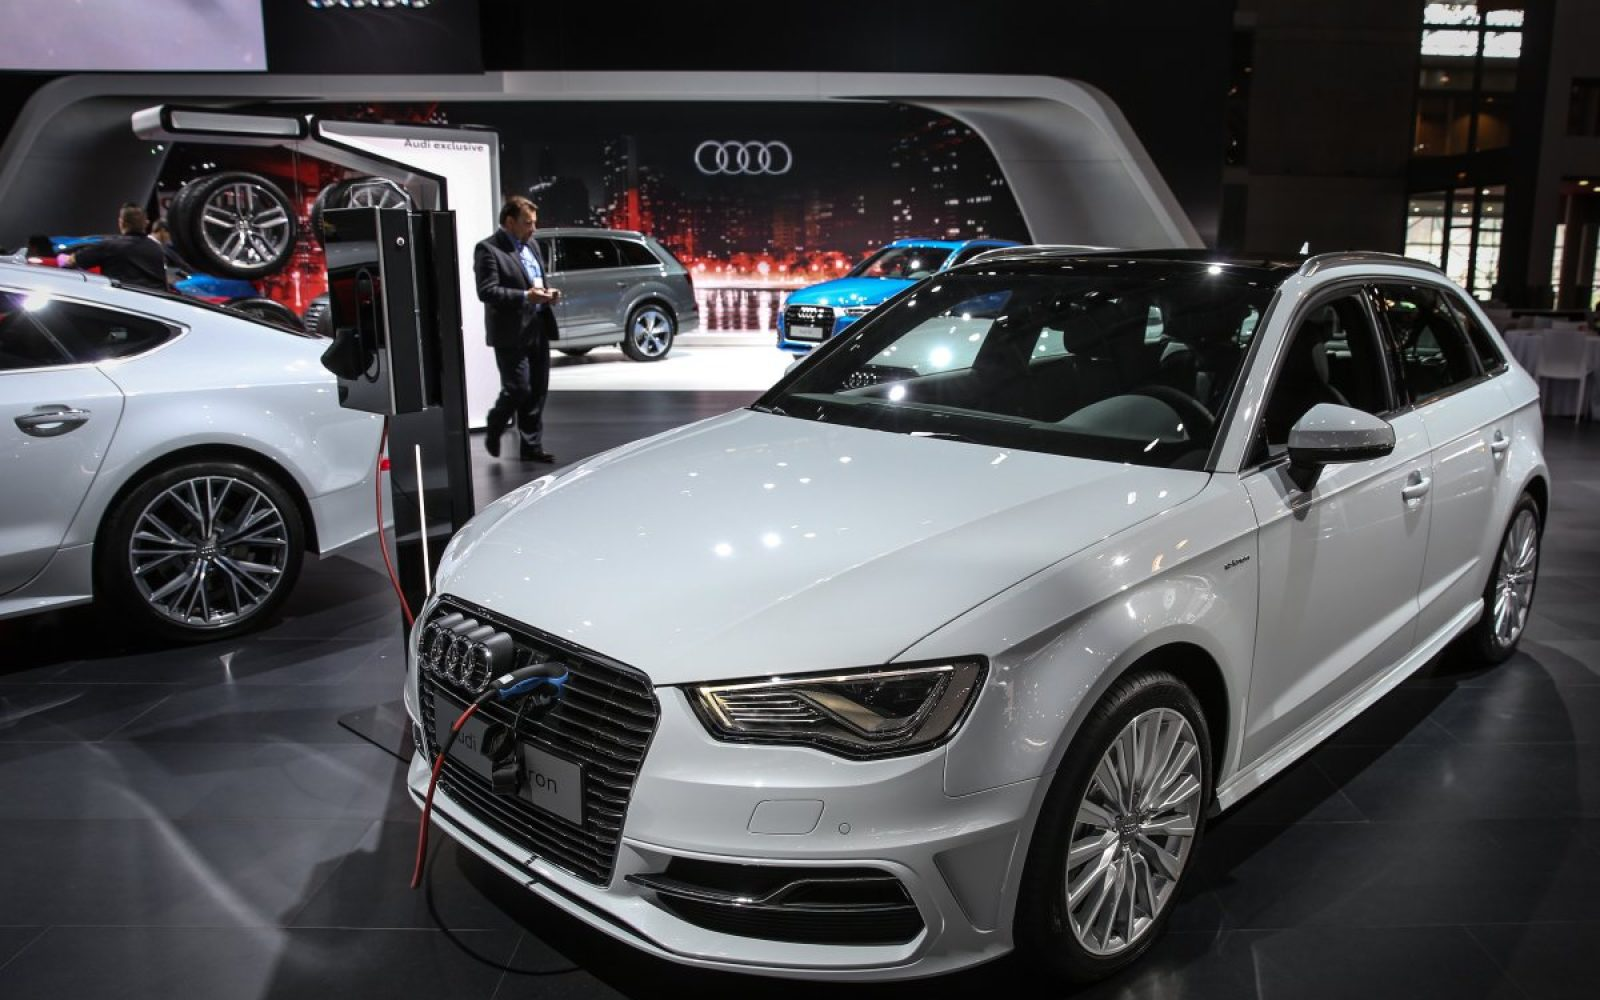 Audi A Etron Will Start At With KWh Battery And EV - Audi a3 e tron range